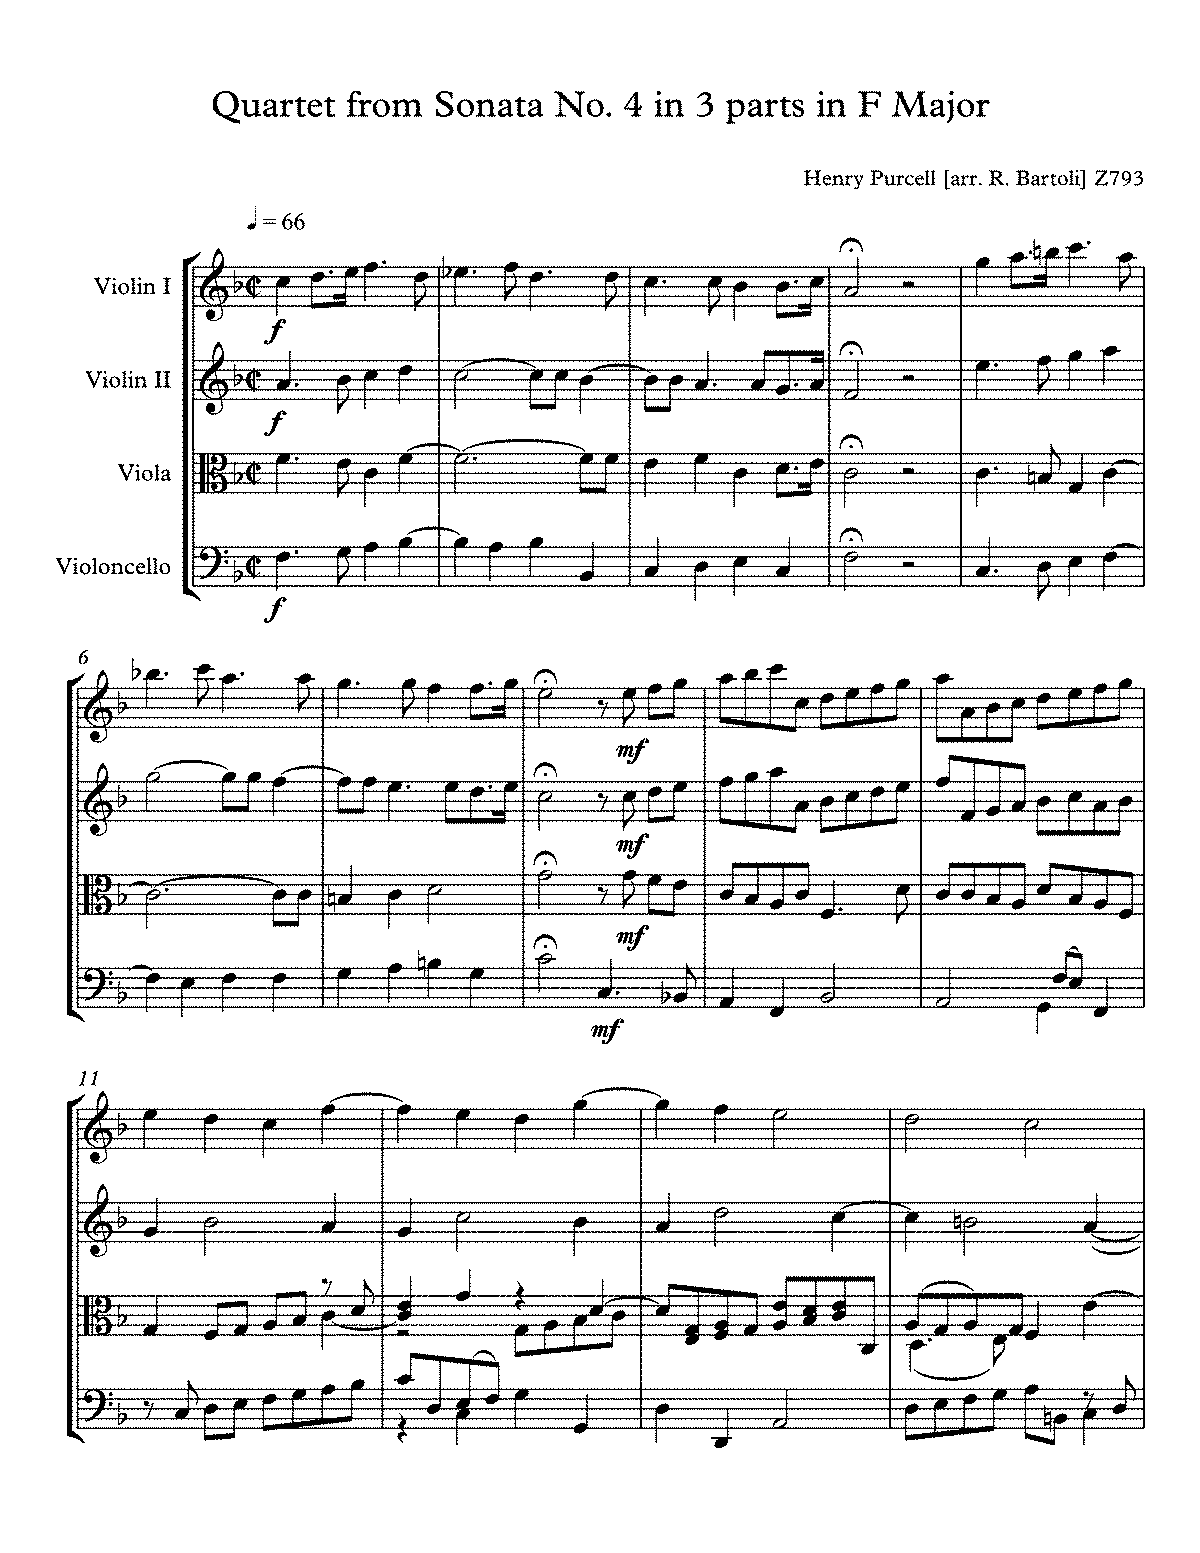 PMLP85673-Purcell Z793 Sonata No. 4 in F russ Va part - Full Score.pdf